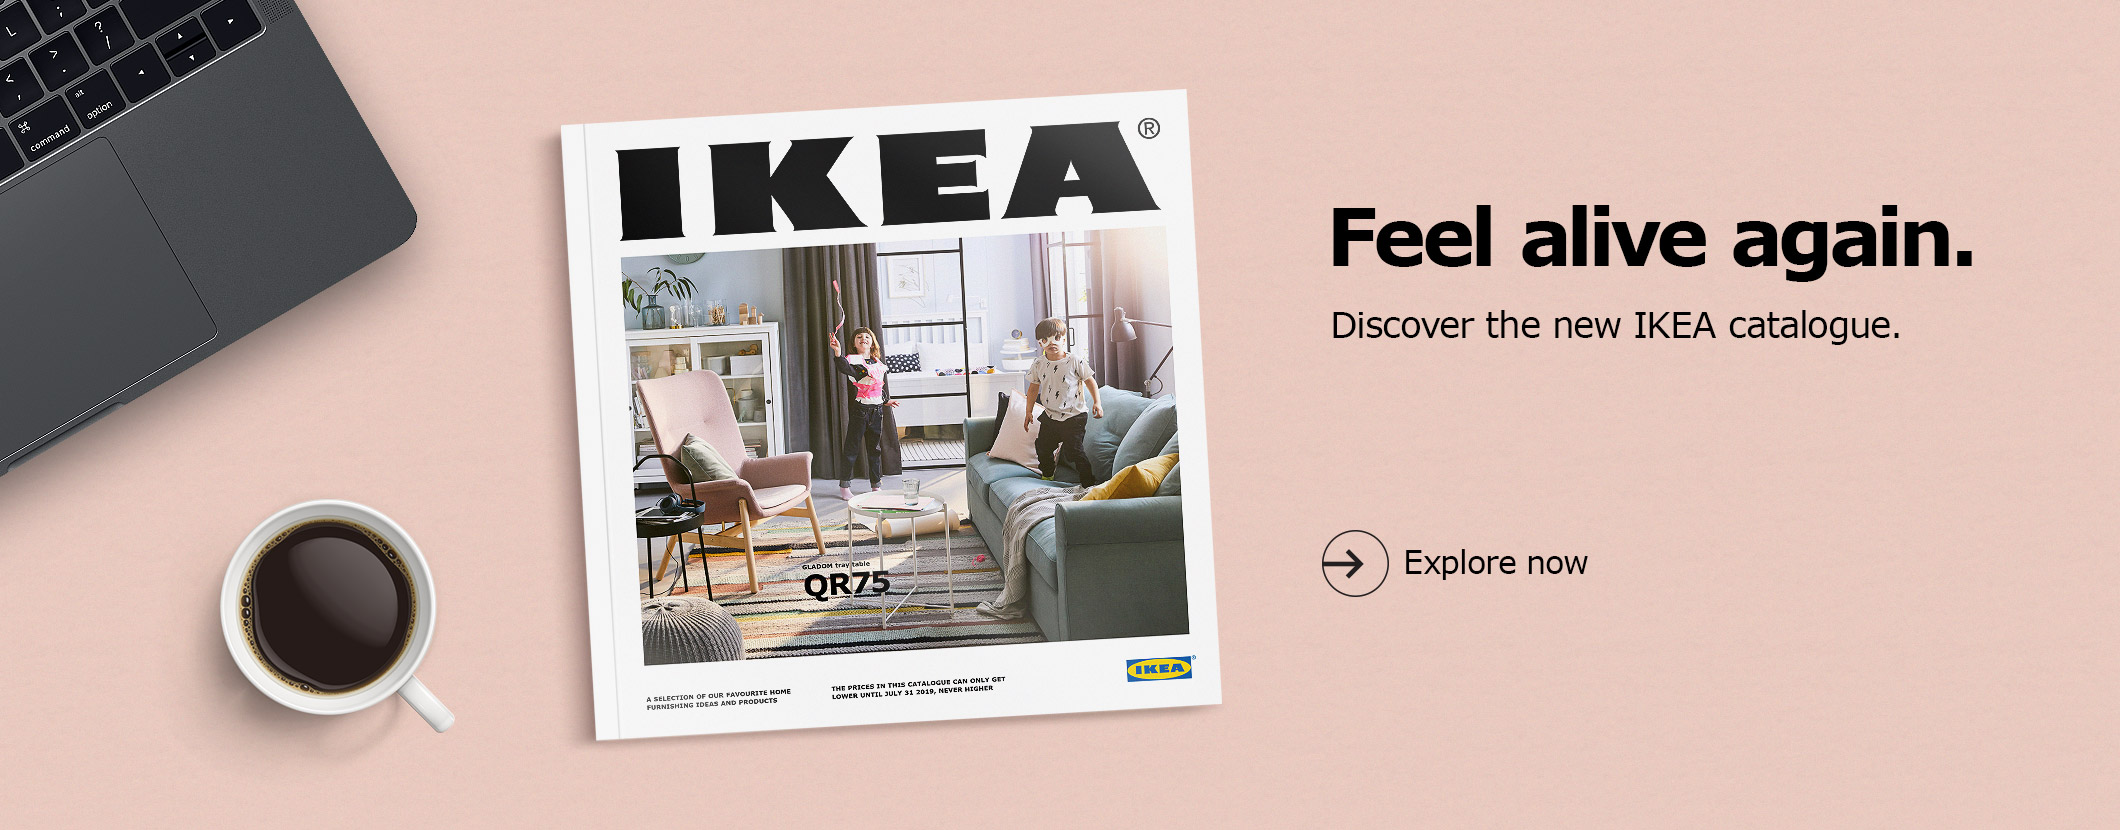 Discover the new IKEA catalogue